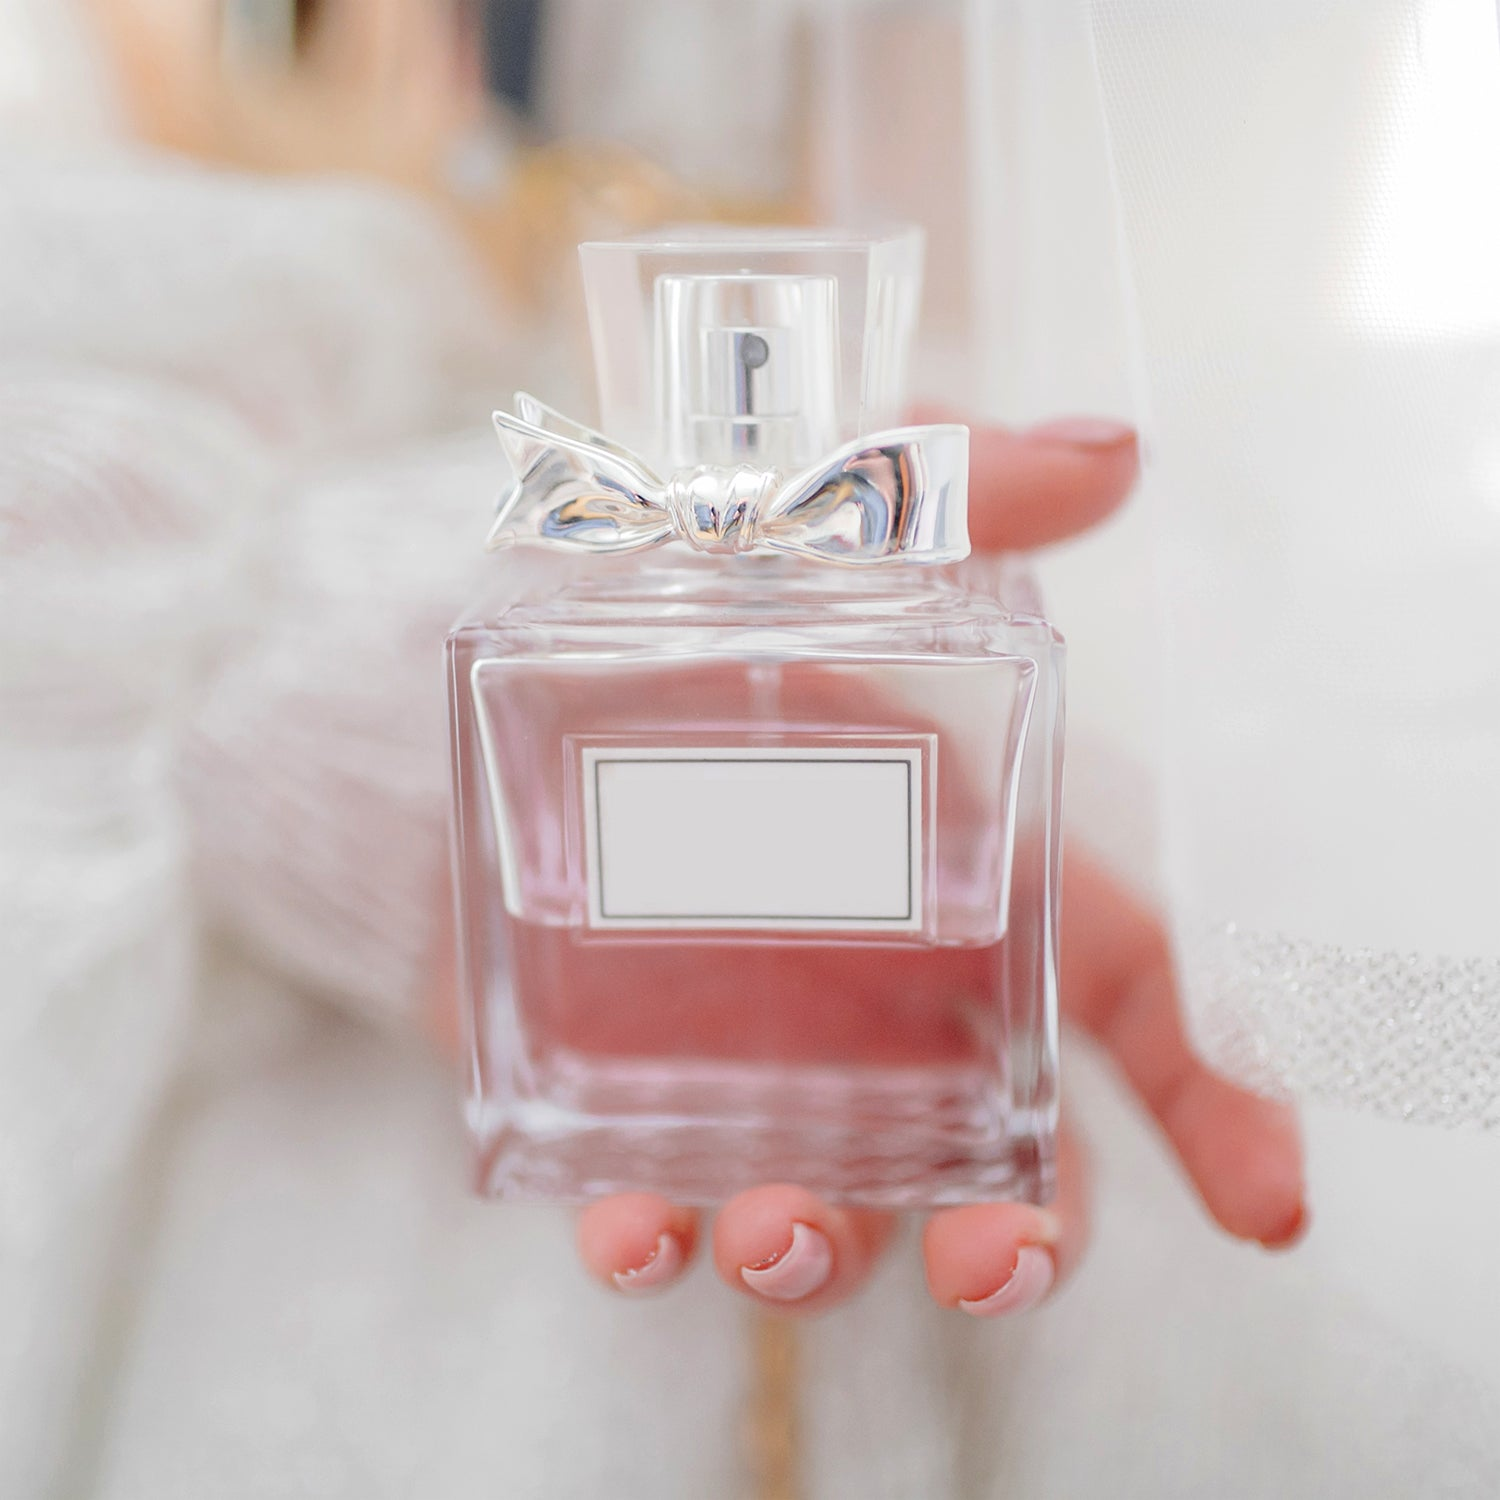 5 Toxic & Hormone-altering Perfume Ingredients